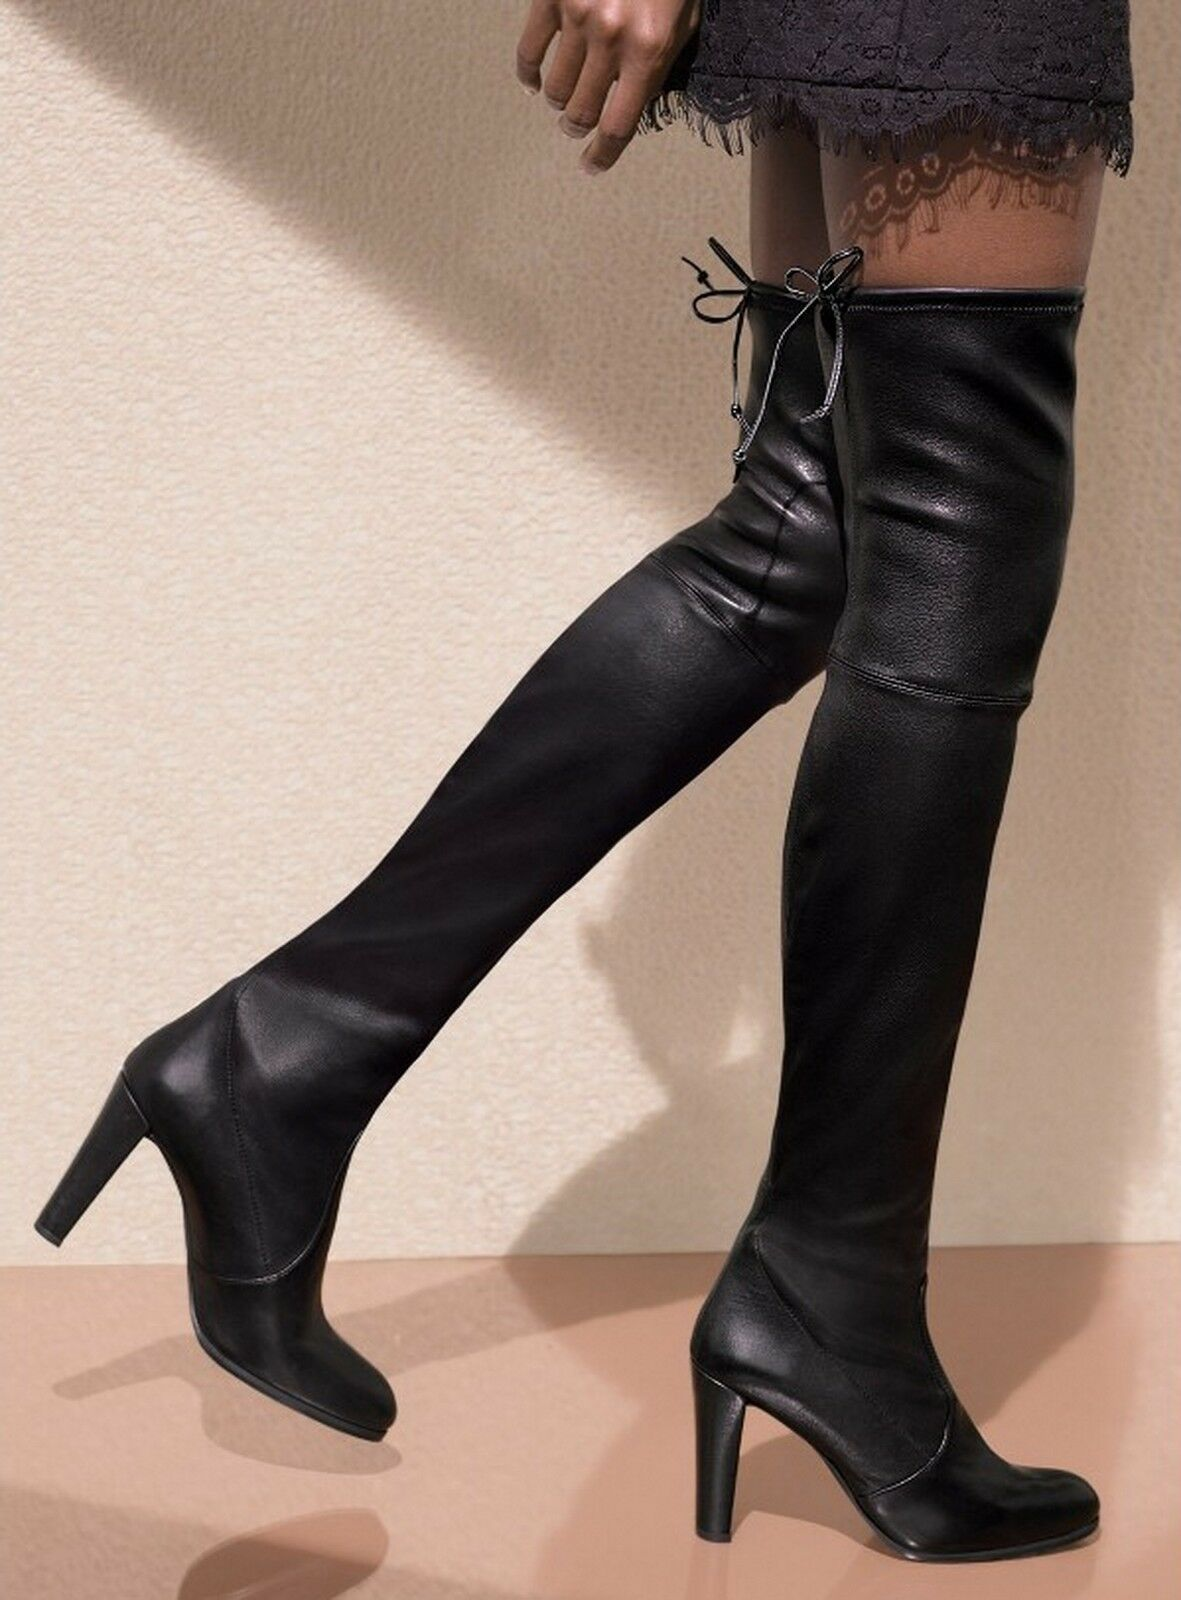 NEW Stuart Weitzman Highland Over-the-Knee boot shoes 86801, Black Leather, US 5M